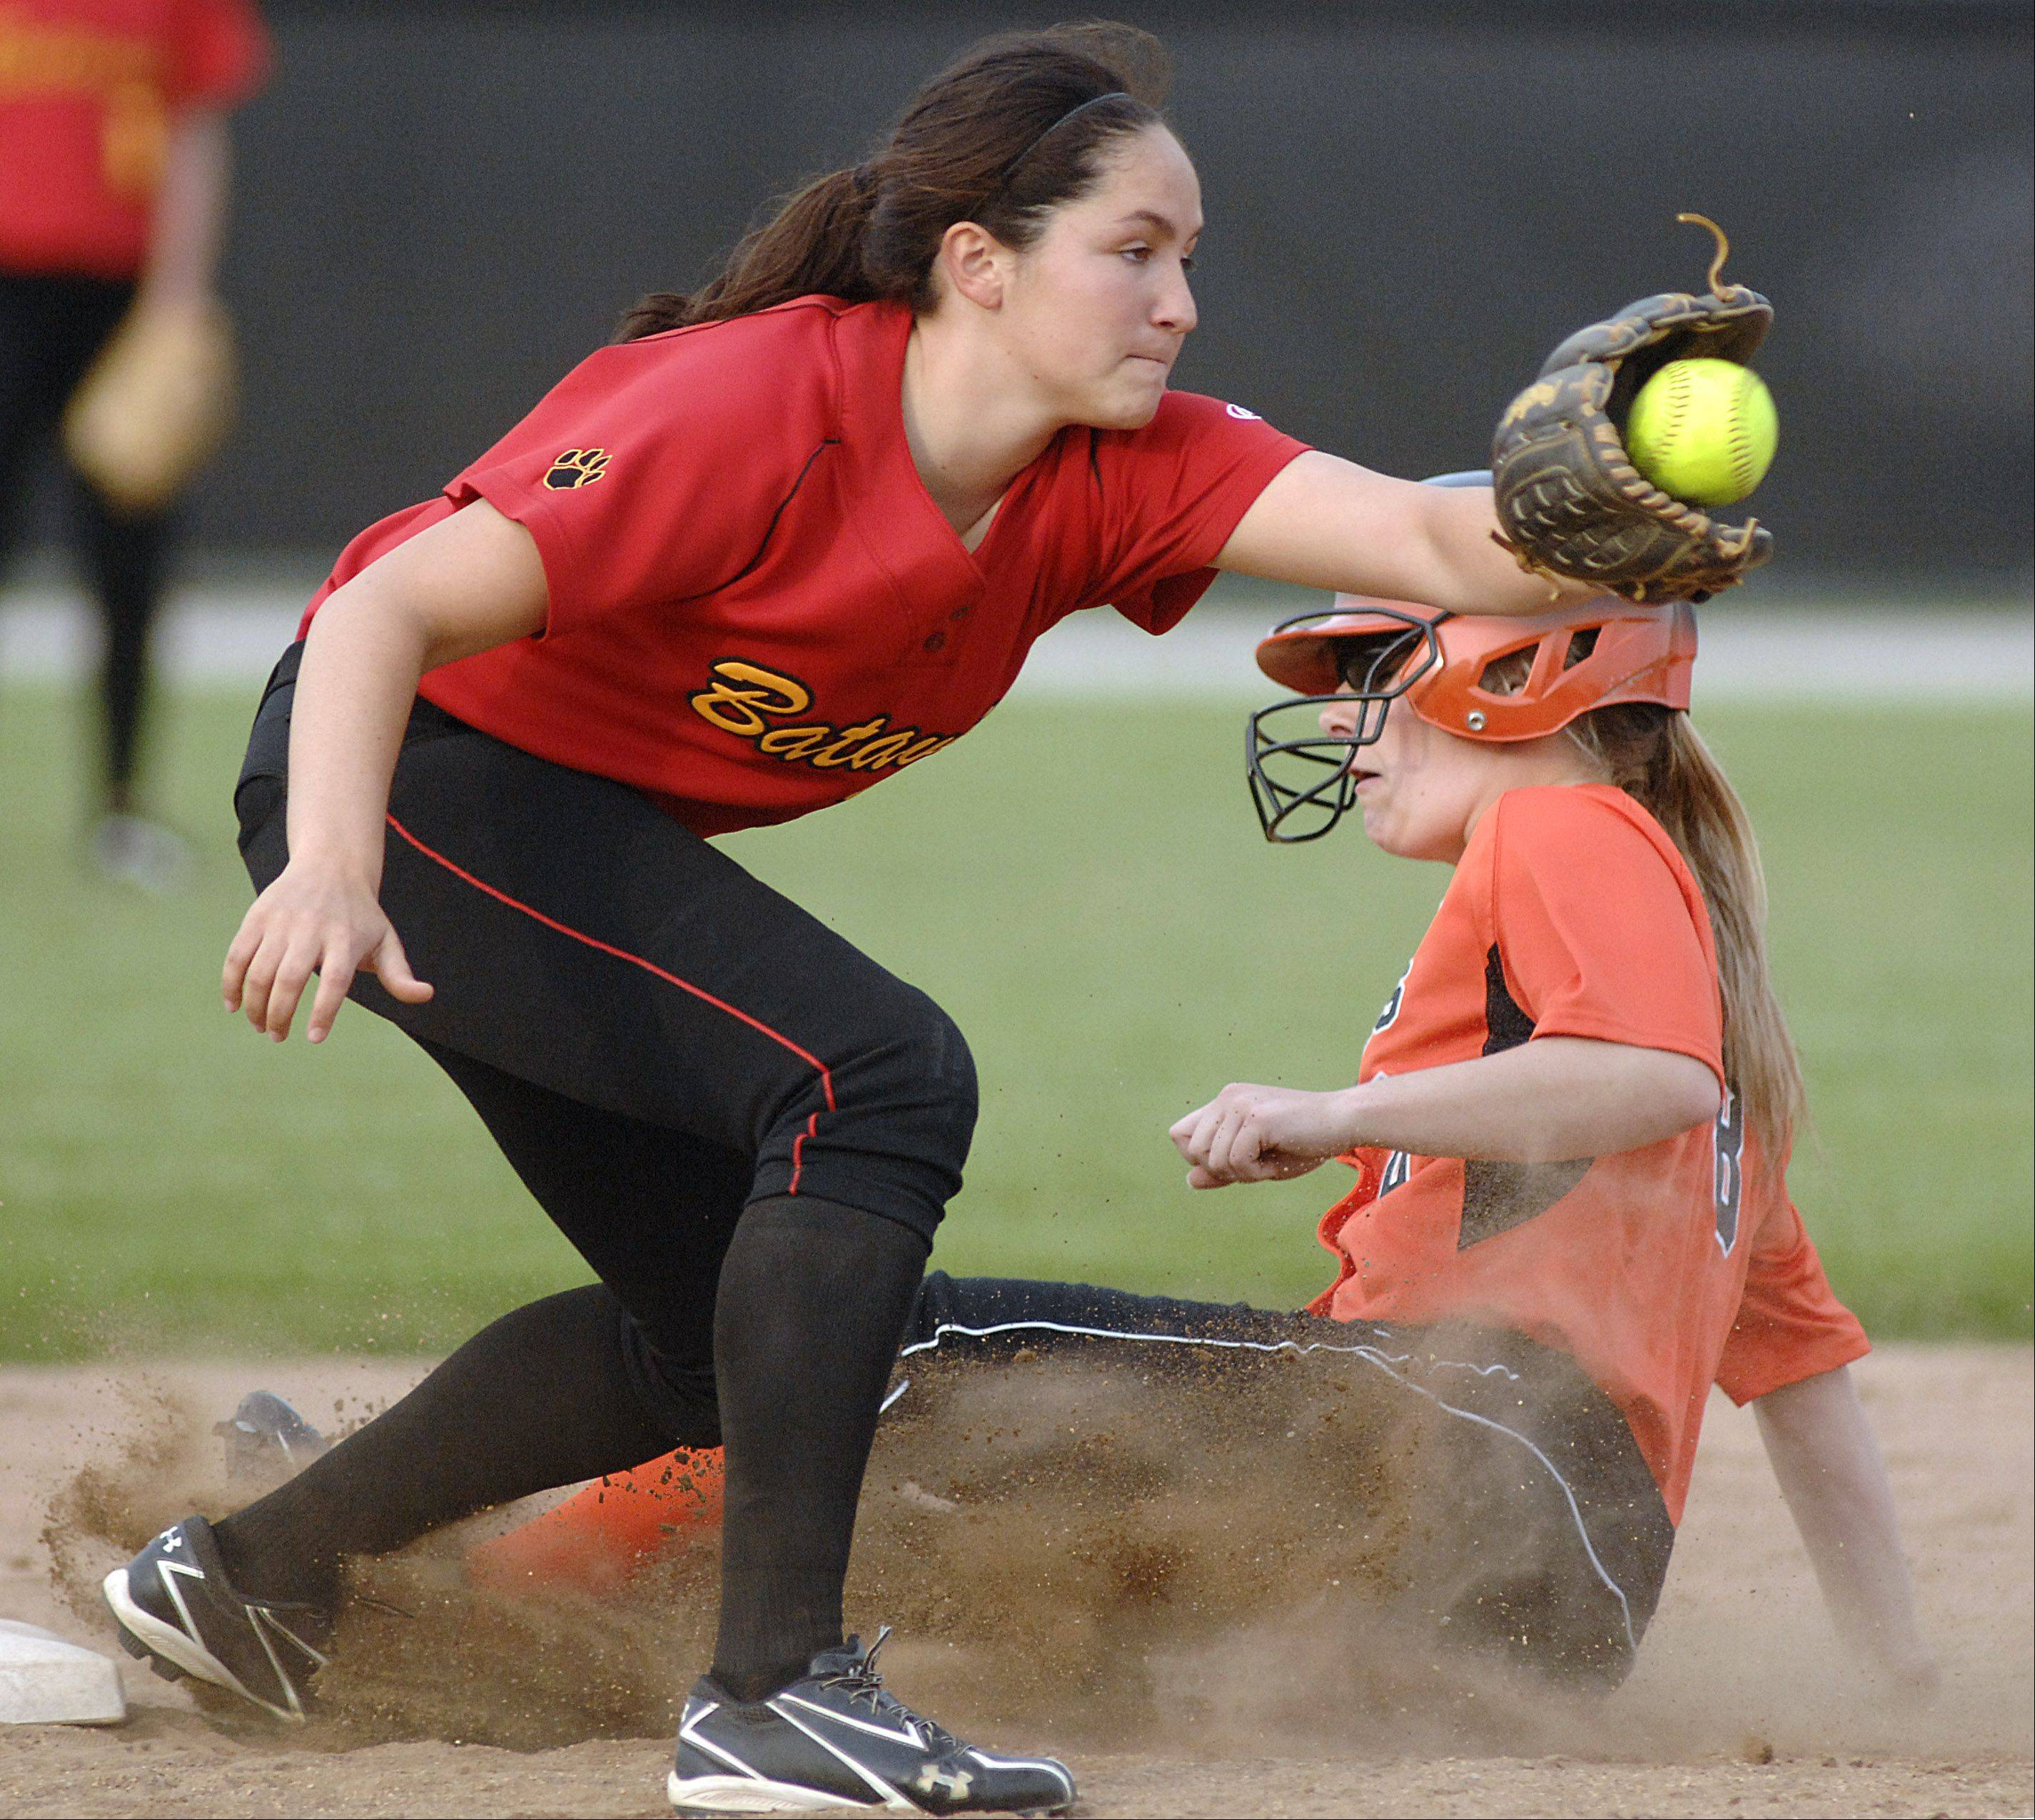 St. Charles East's Sarah Collalti is safe at second base at Batavia's Sami Villarreal pulls in the throw Wednesday.